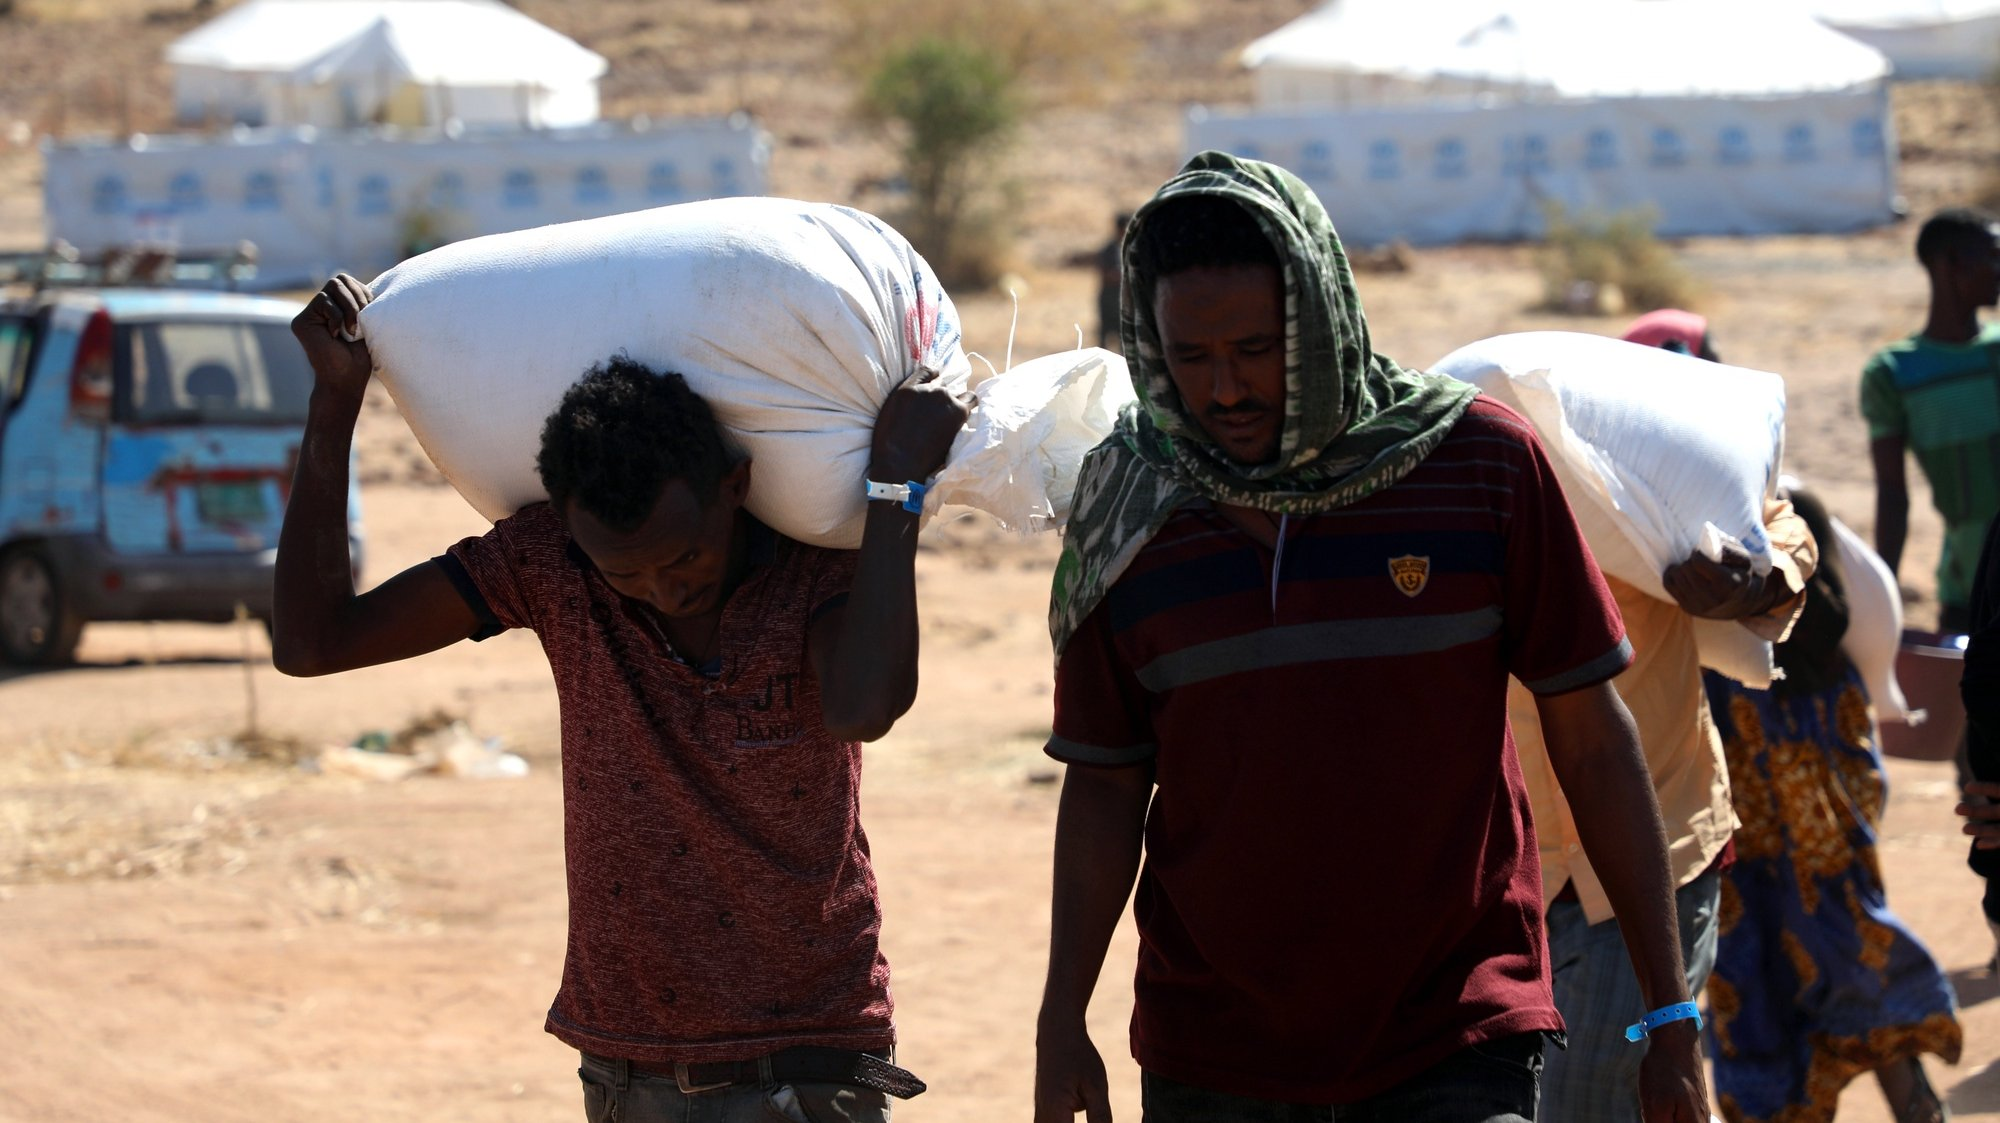 epa08849883 Refugees carrying flour at Um Rakuba refugee camp in the state of al-Qadarif (also known as Gedaref), Sudan, 28 November 2020. The number of refugees in this camp reached nearly 10,000 refugees who crossed the border from Ethiopia to Sudan to escape the conflict in Tigray region of Ethiopia.  EPA/MOHAMMED ABU OBAID